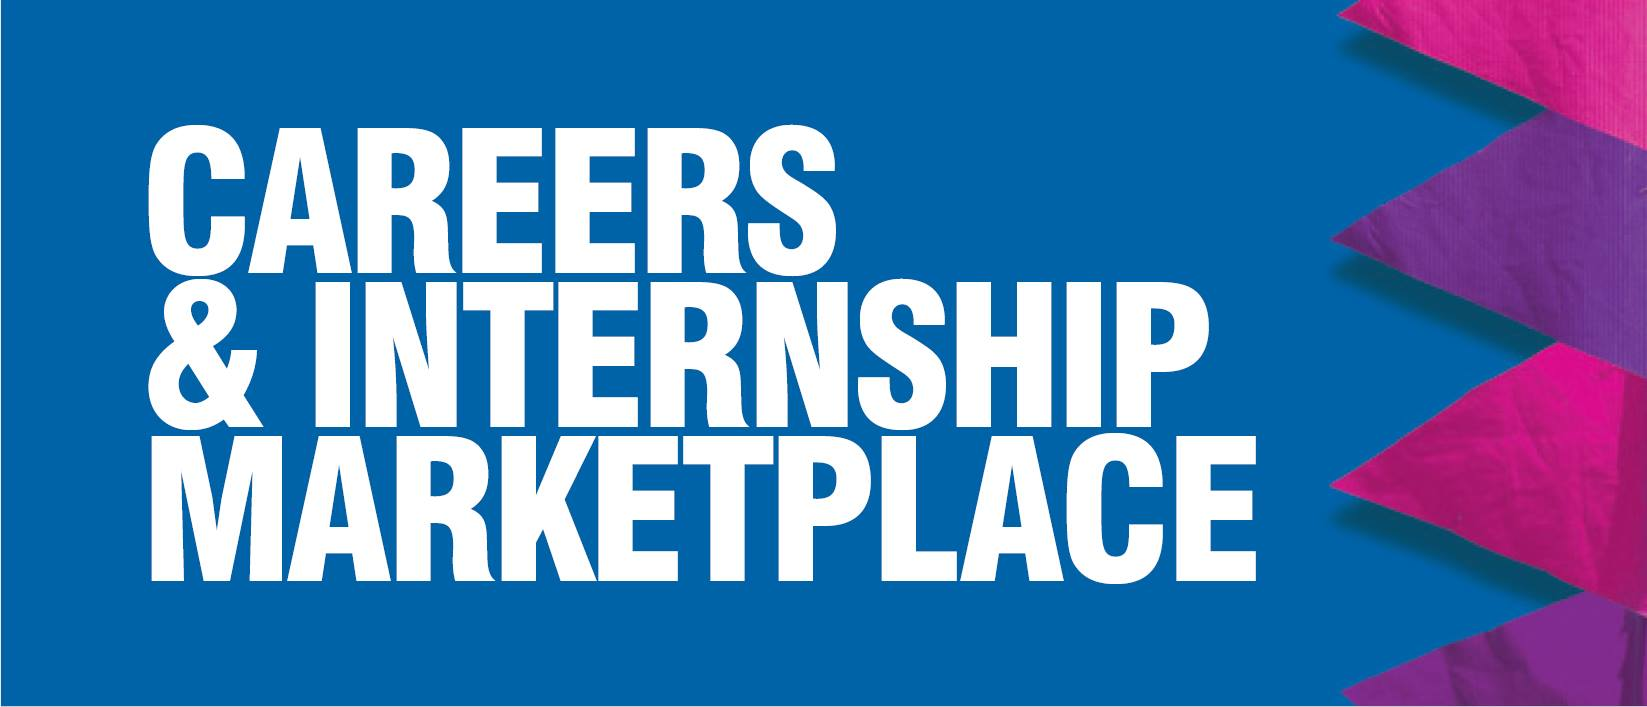 Careers & Intership Marketplace 2018